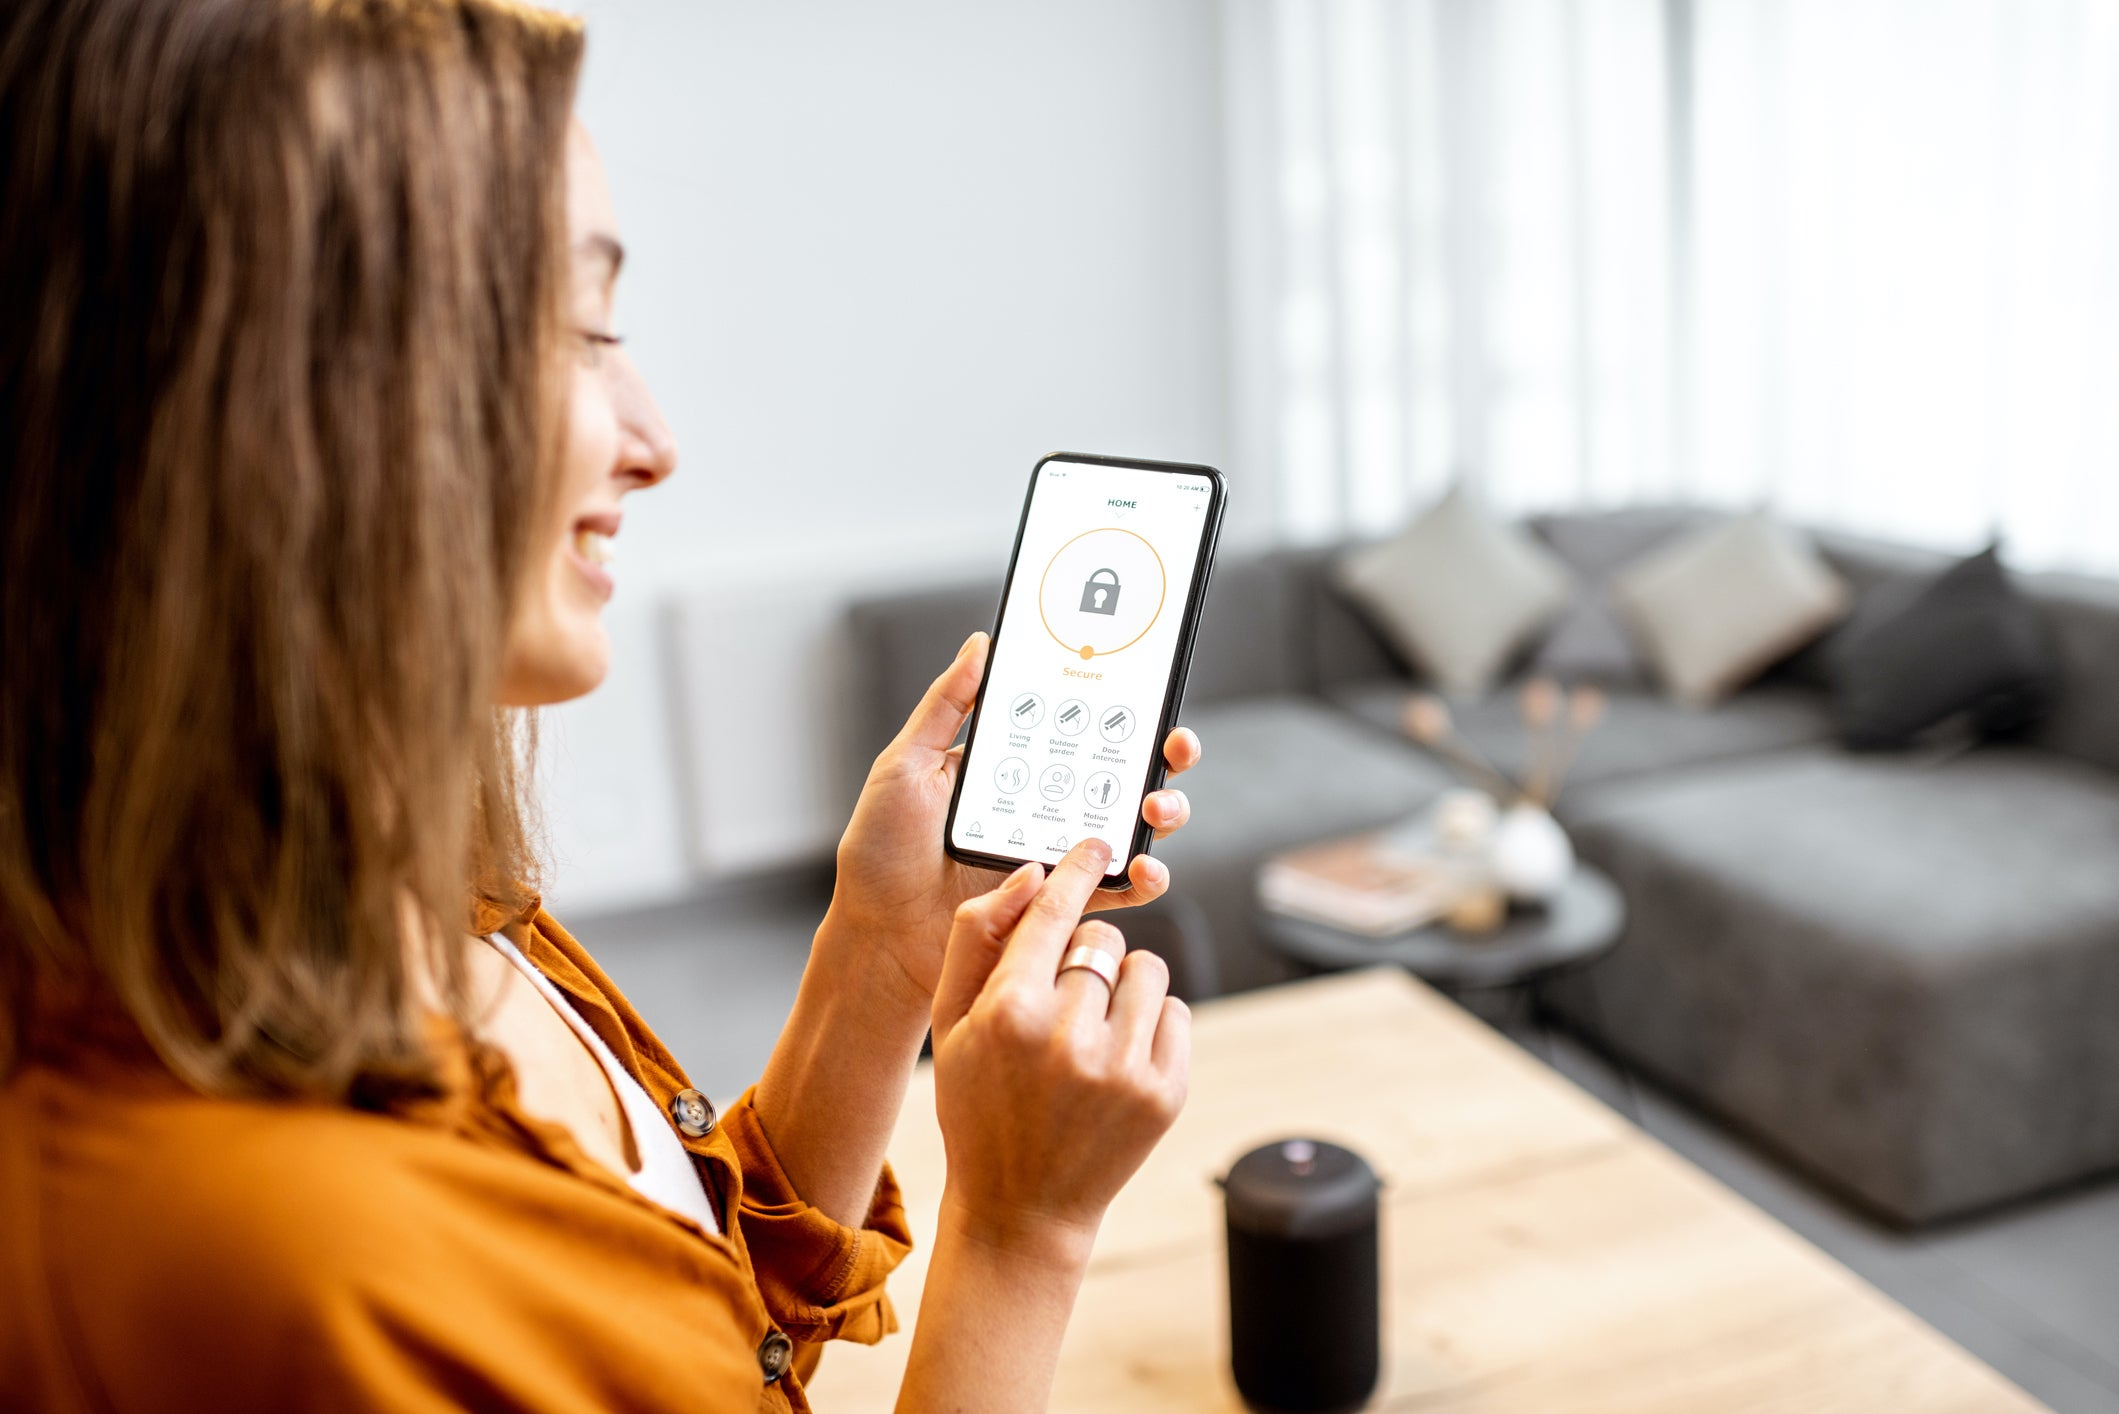 How to Make a Smart Home: A Beginner's Guide